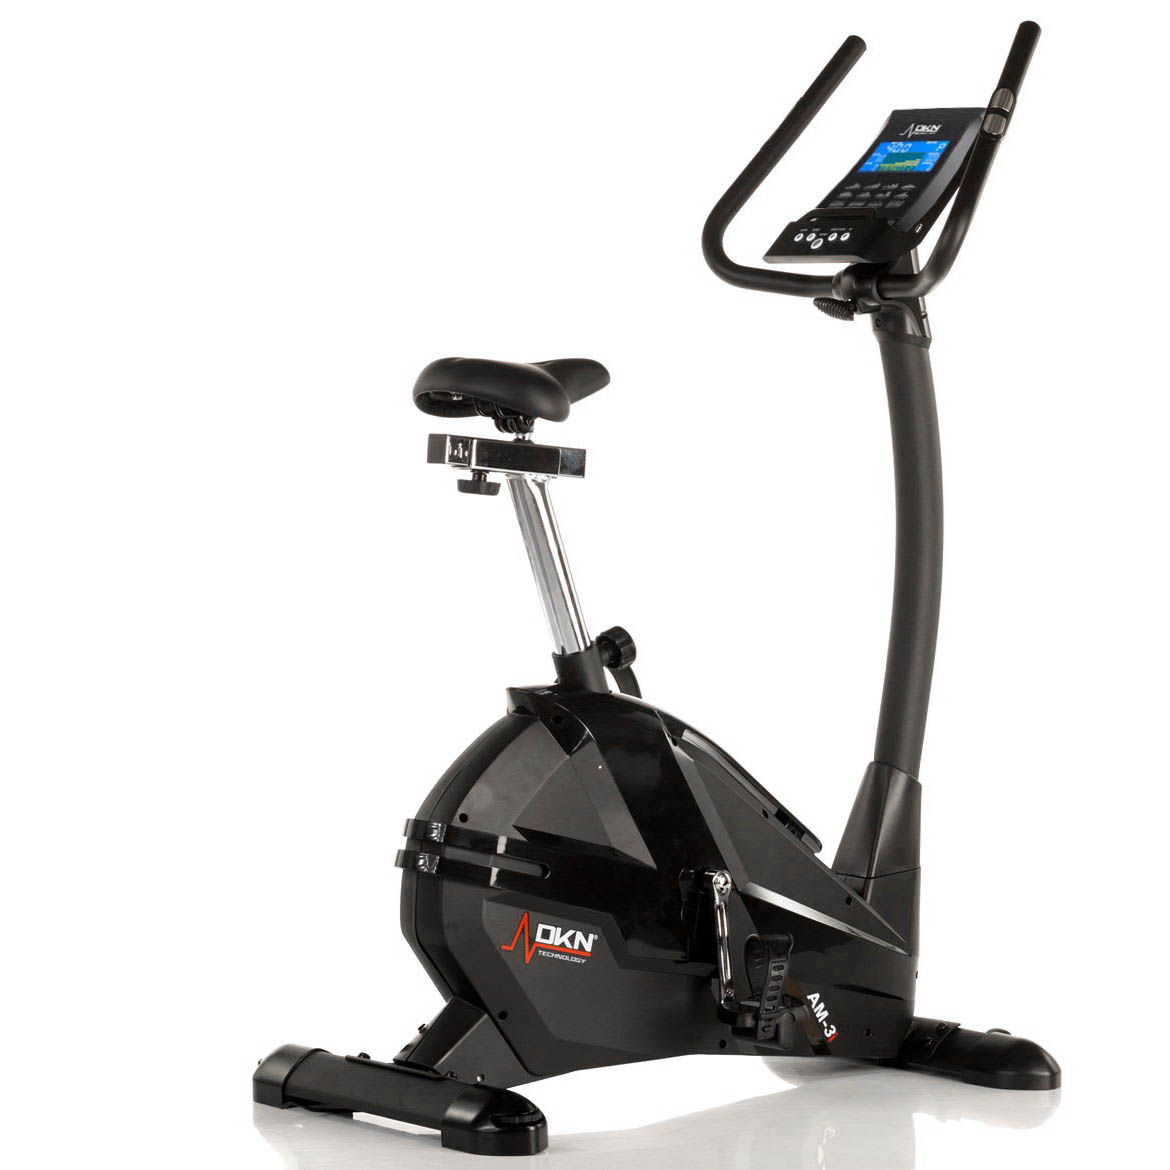 DKN AM-3i Exercise Bike